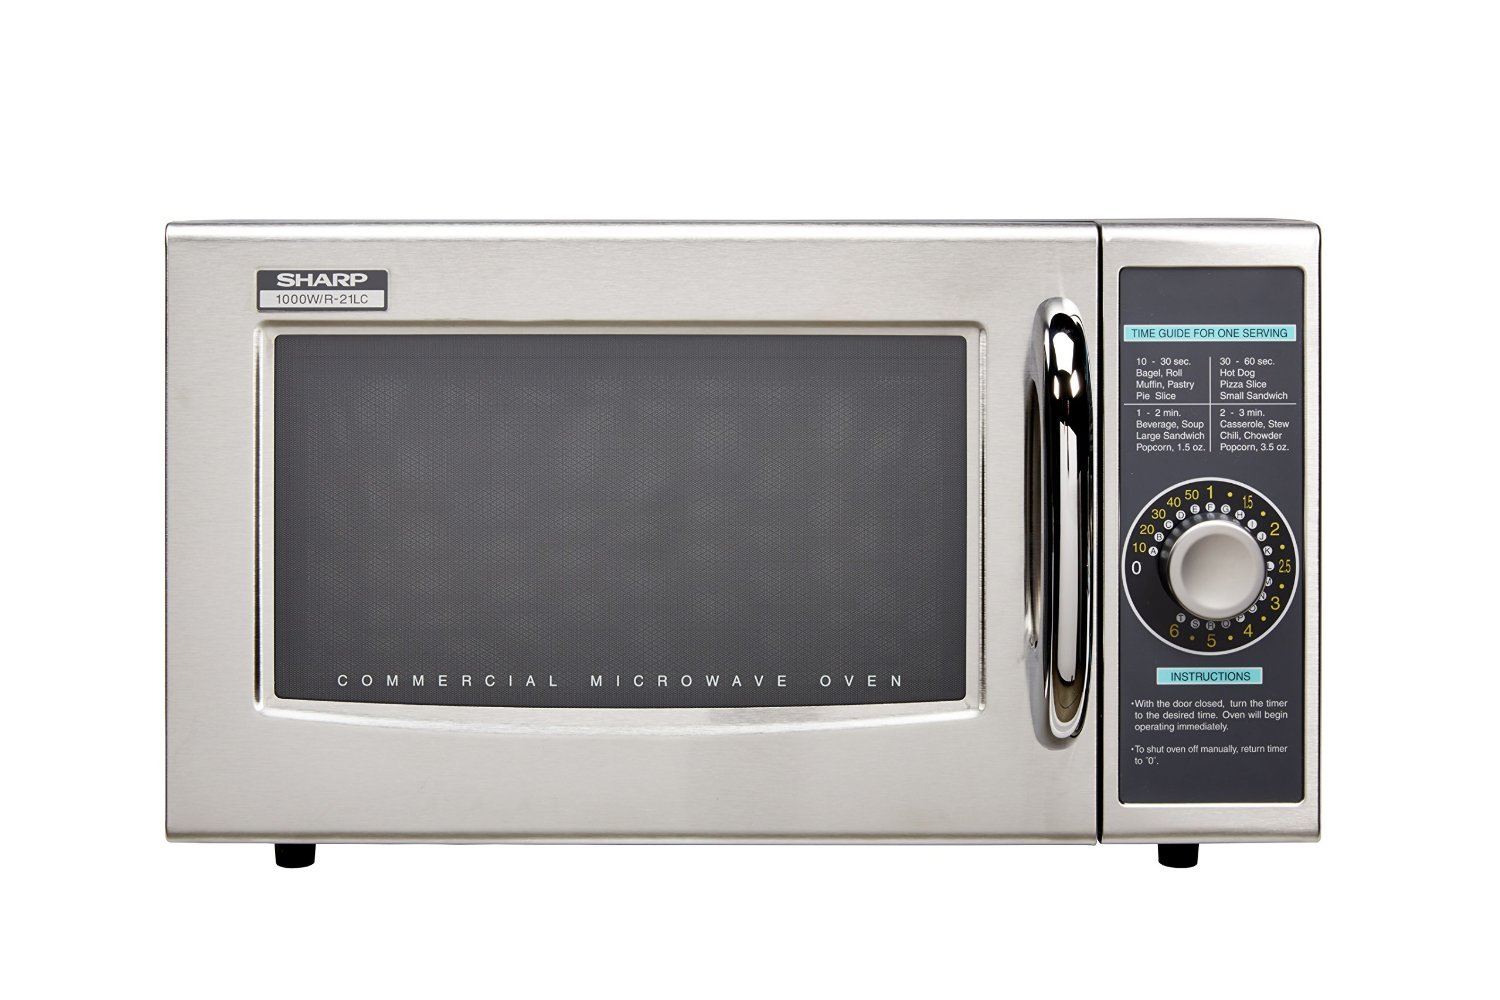 Quasar Microwave Oven Bestmicrowave